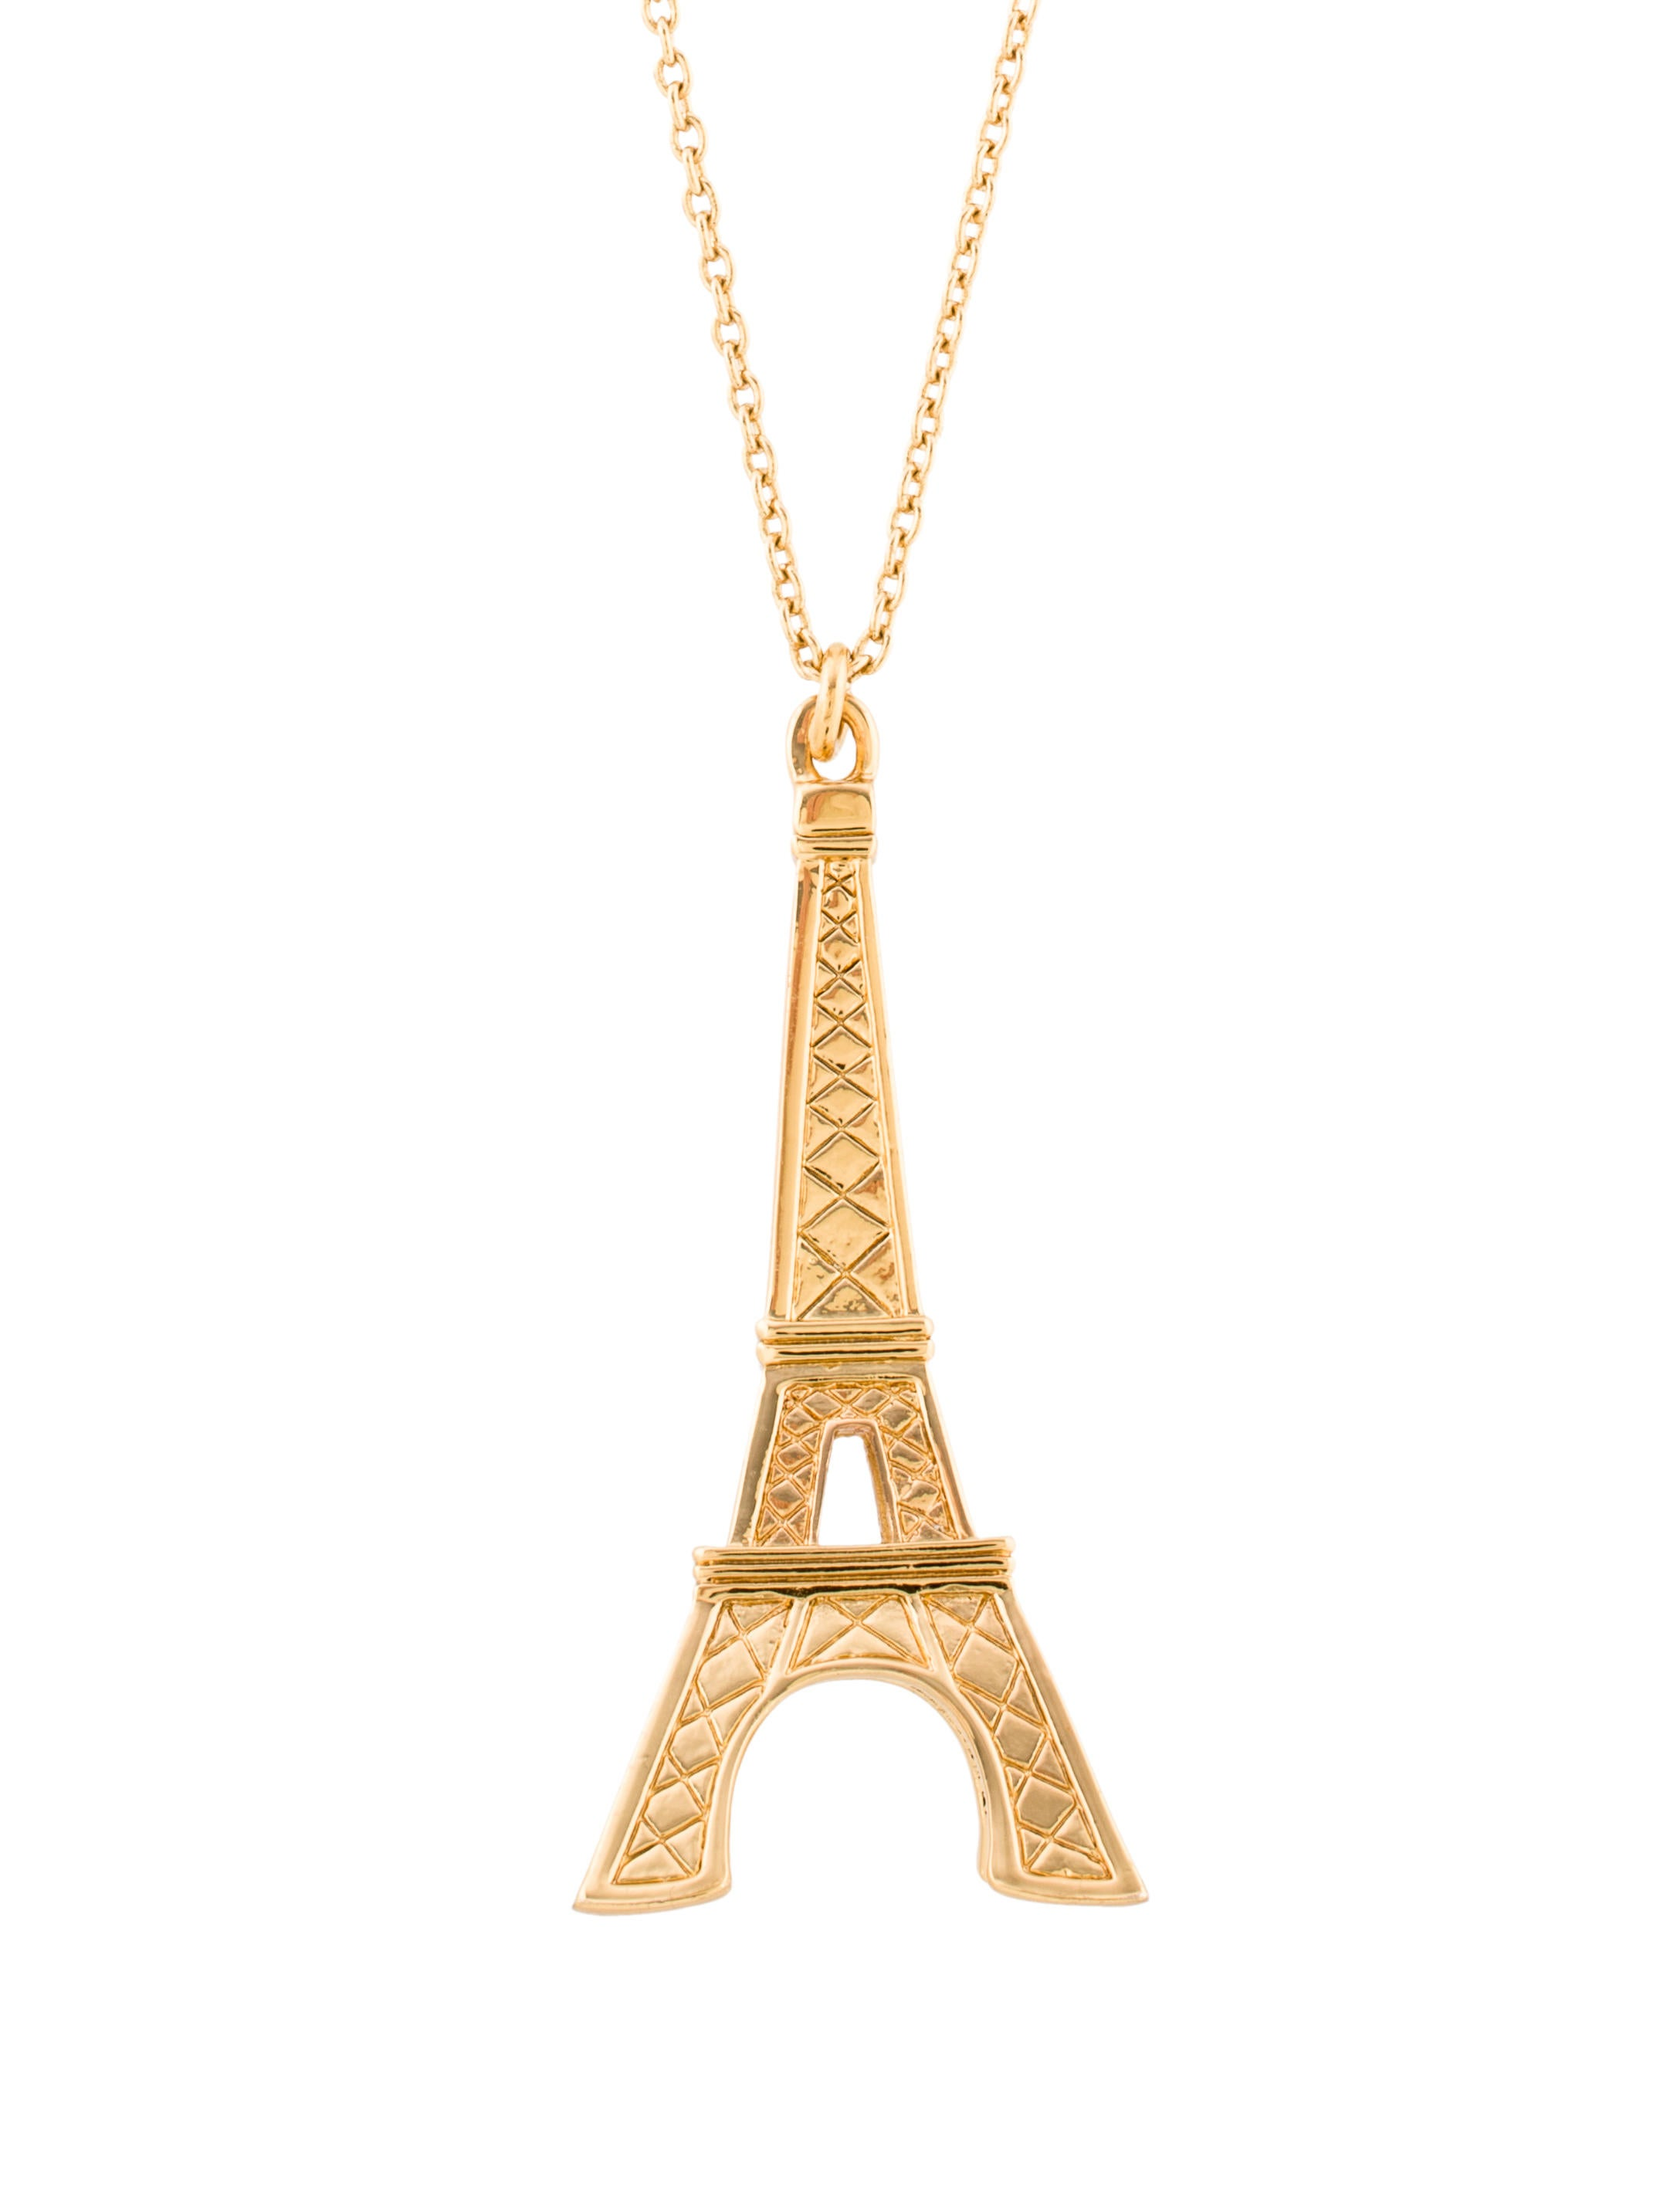 Kate spade new york parisian lights eiffel tower pendant necklace parisian lights eiffel tower pendant necklace aloadofball Image collections